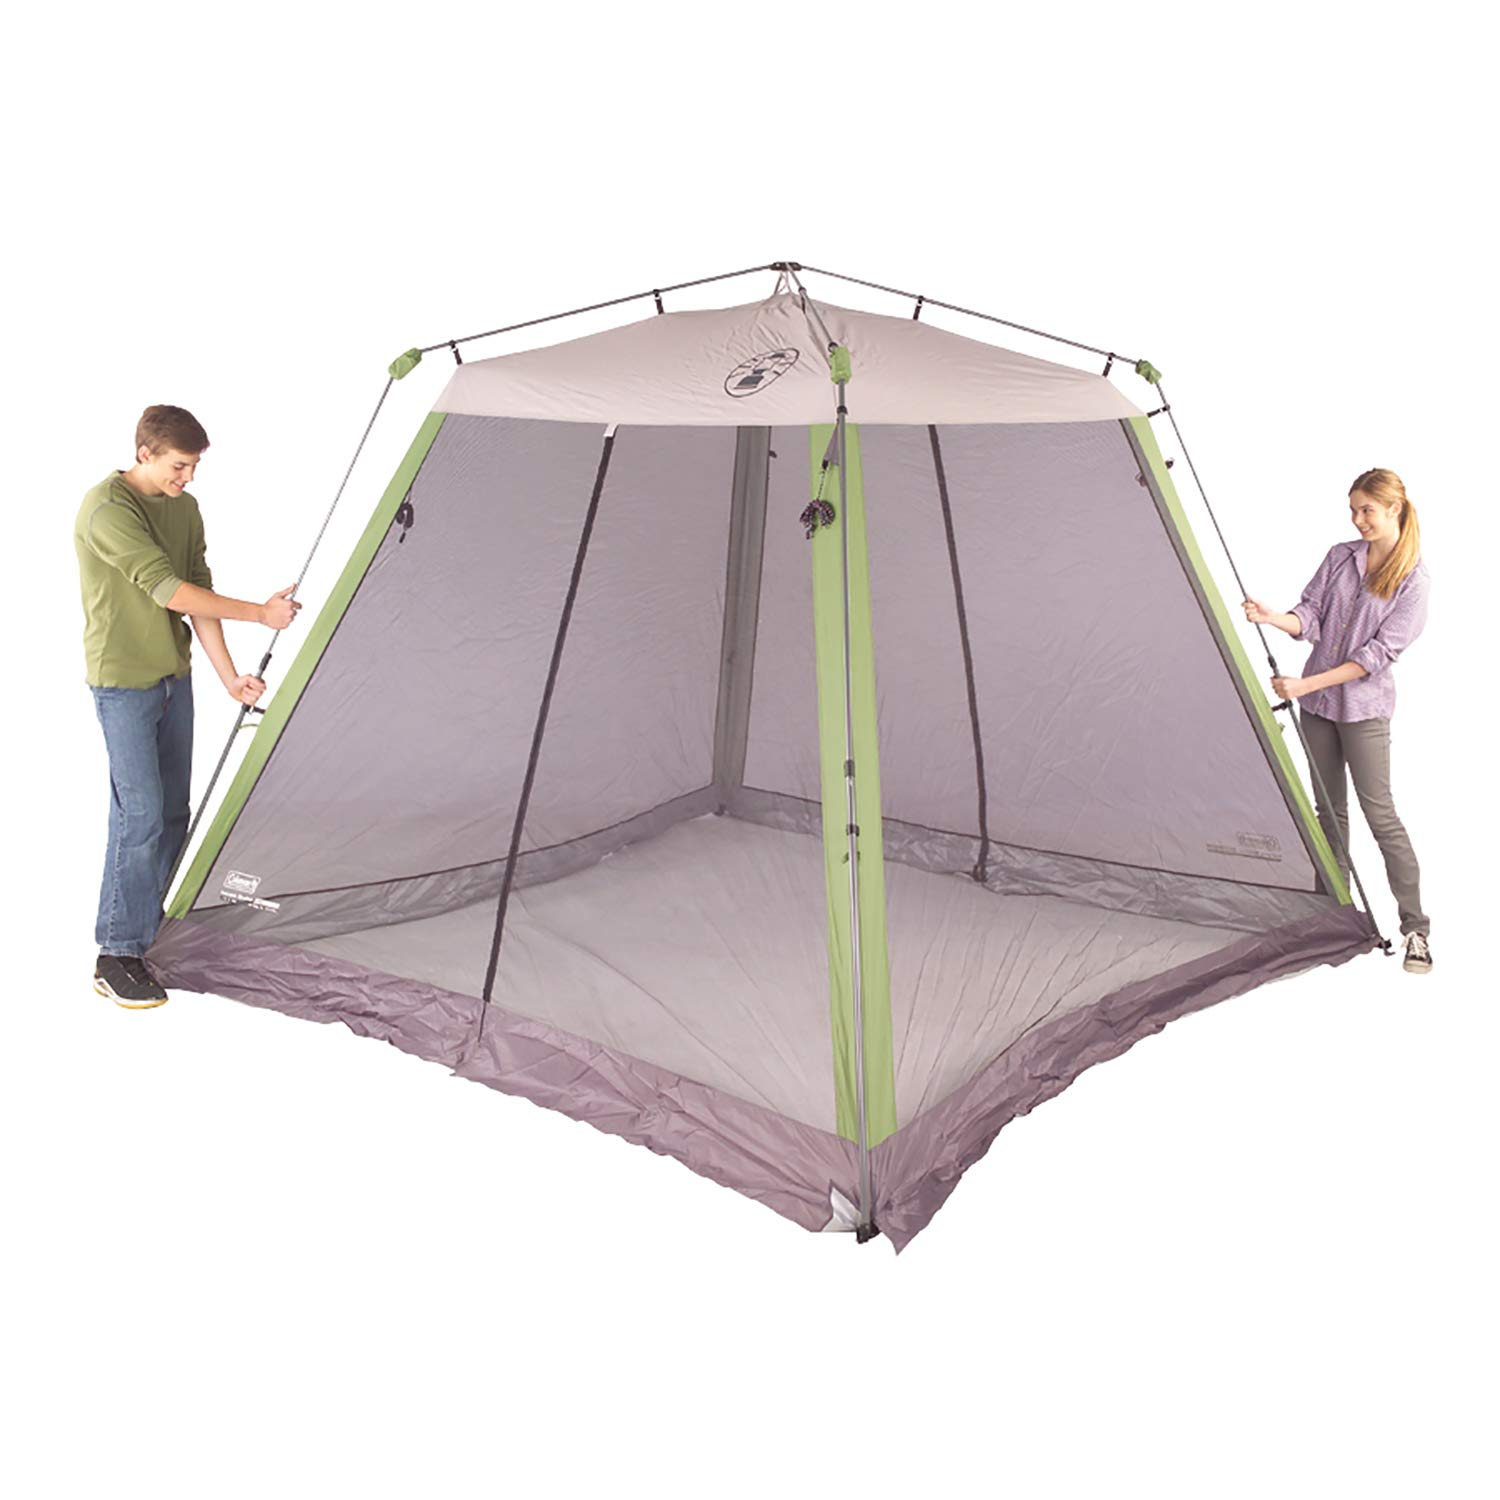 How to setup Pacific Breeze Beach Tent